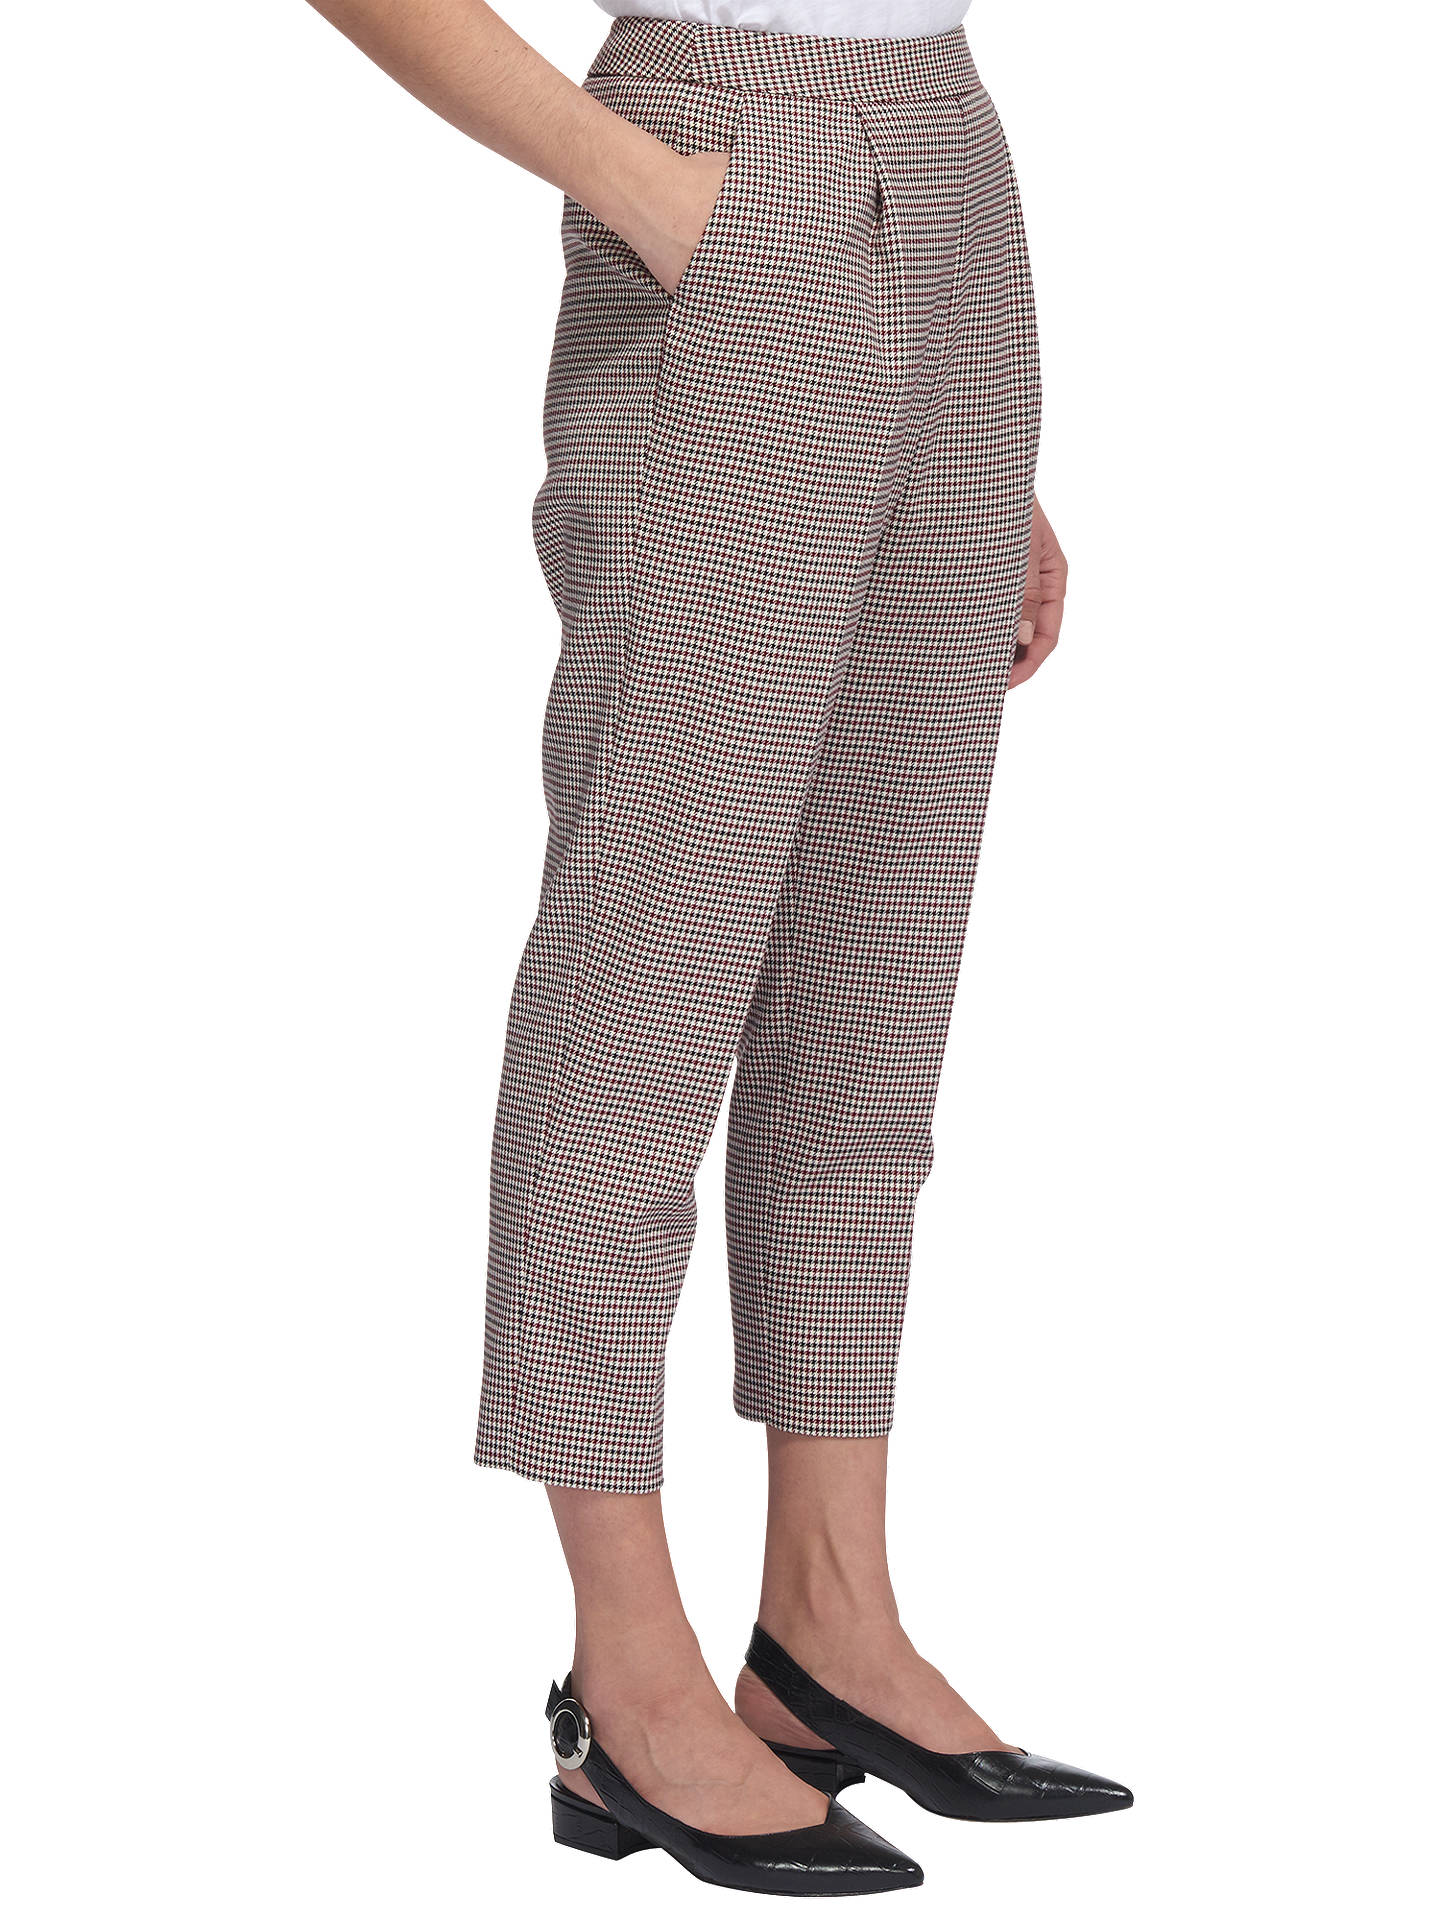 BuyWhistles Mini Check Cropped Trousers, Multi, 6 Online at johnlewis.com